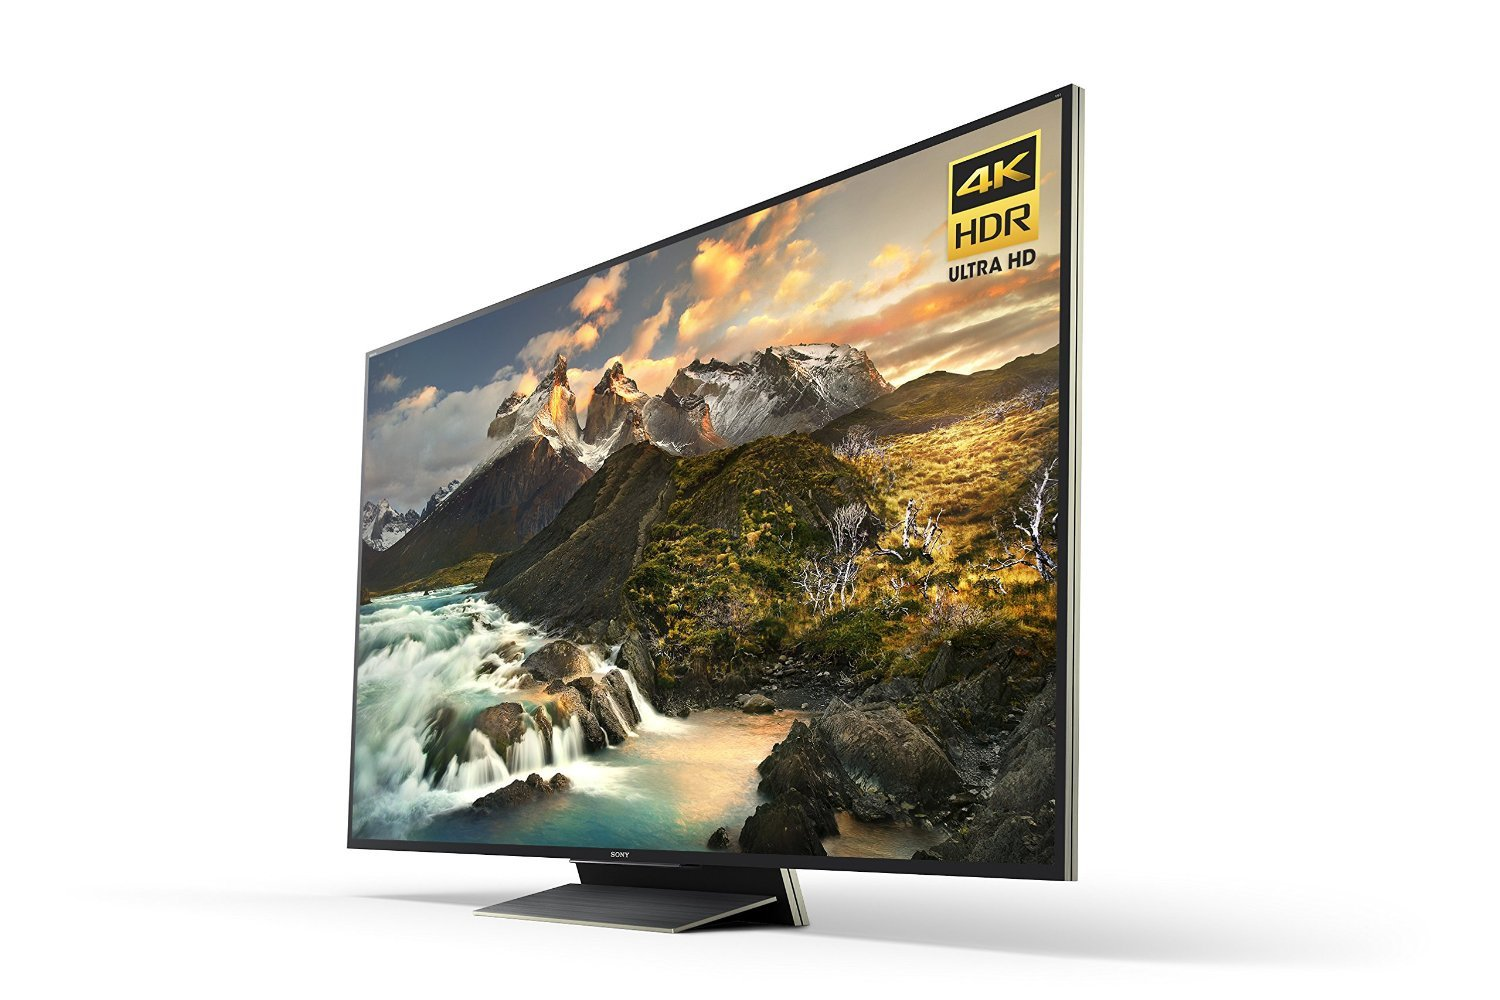 the best 4k uhd hdr tvs for ps4 pro in 2016 guide push square. Black Bedroom Furniture Sets. Home Design Ideas